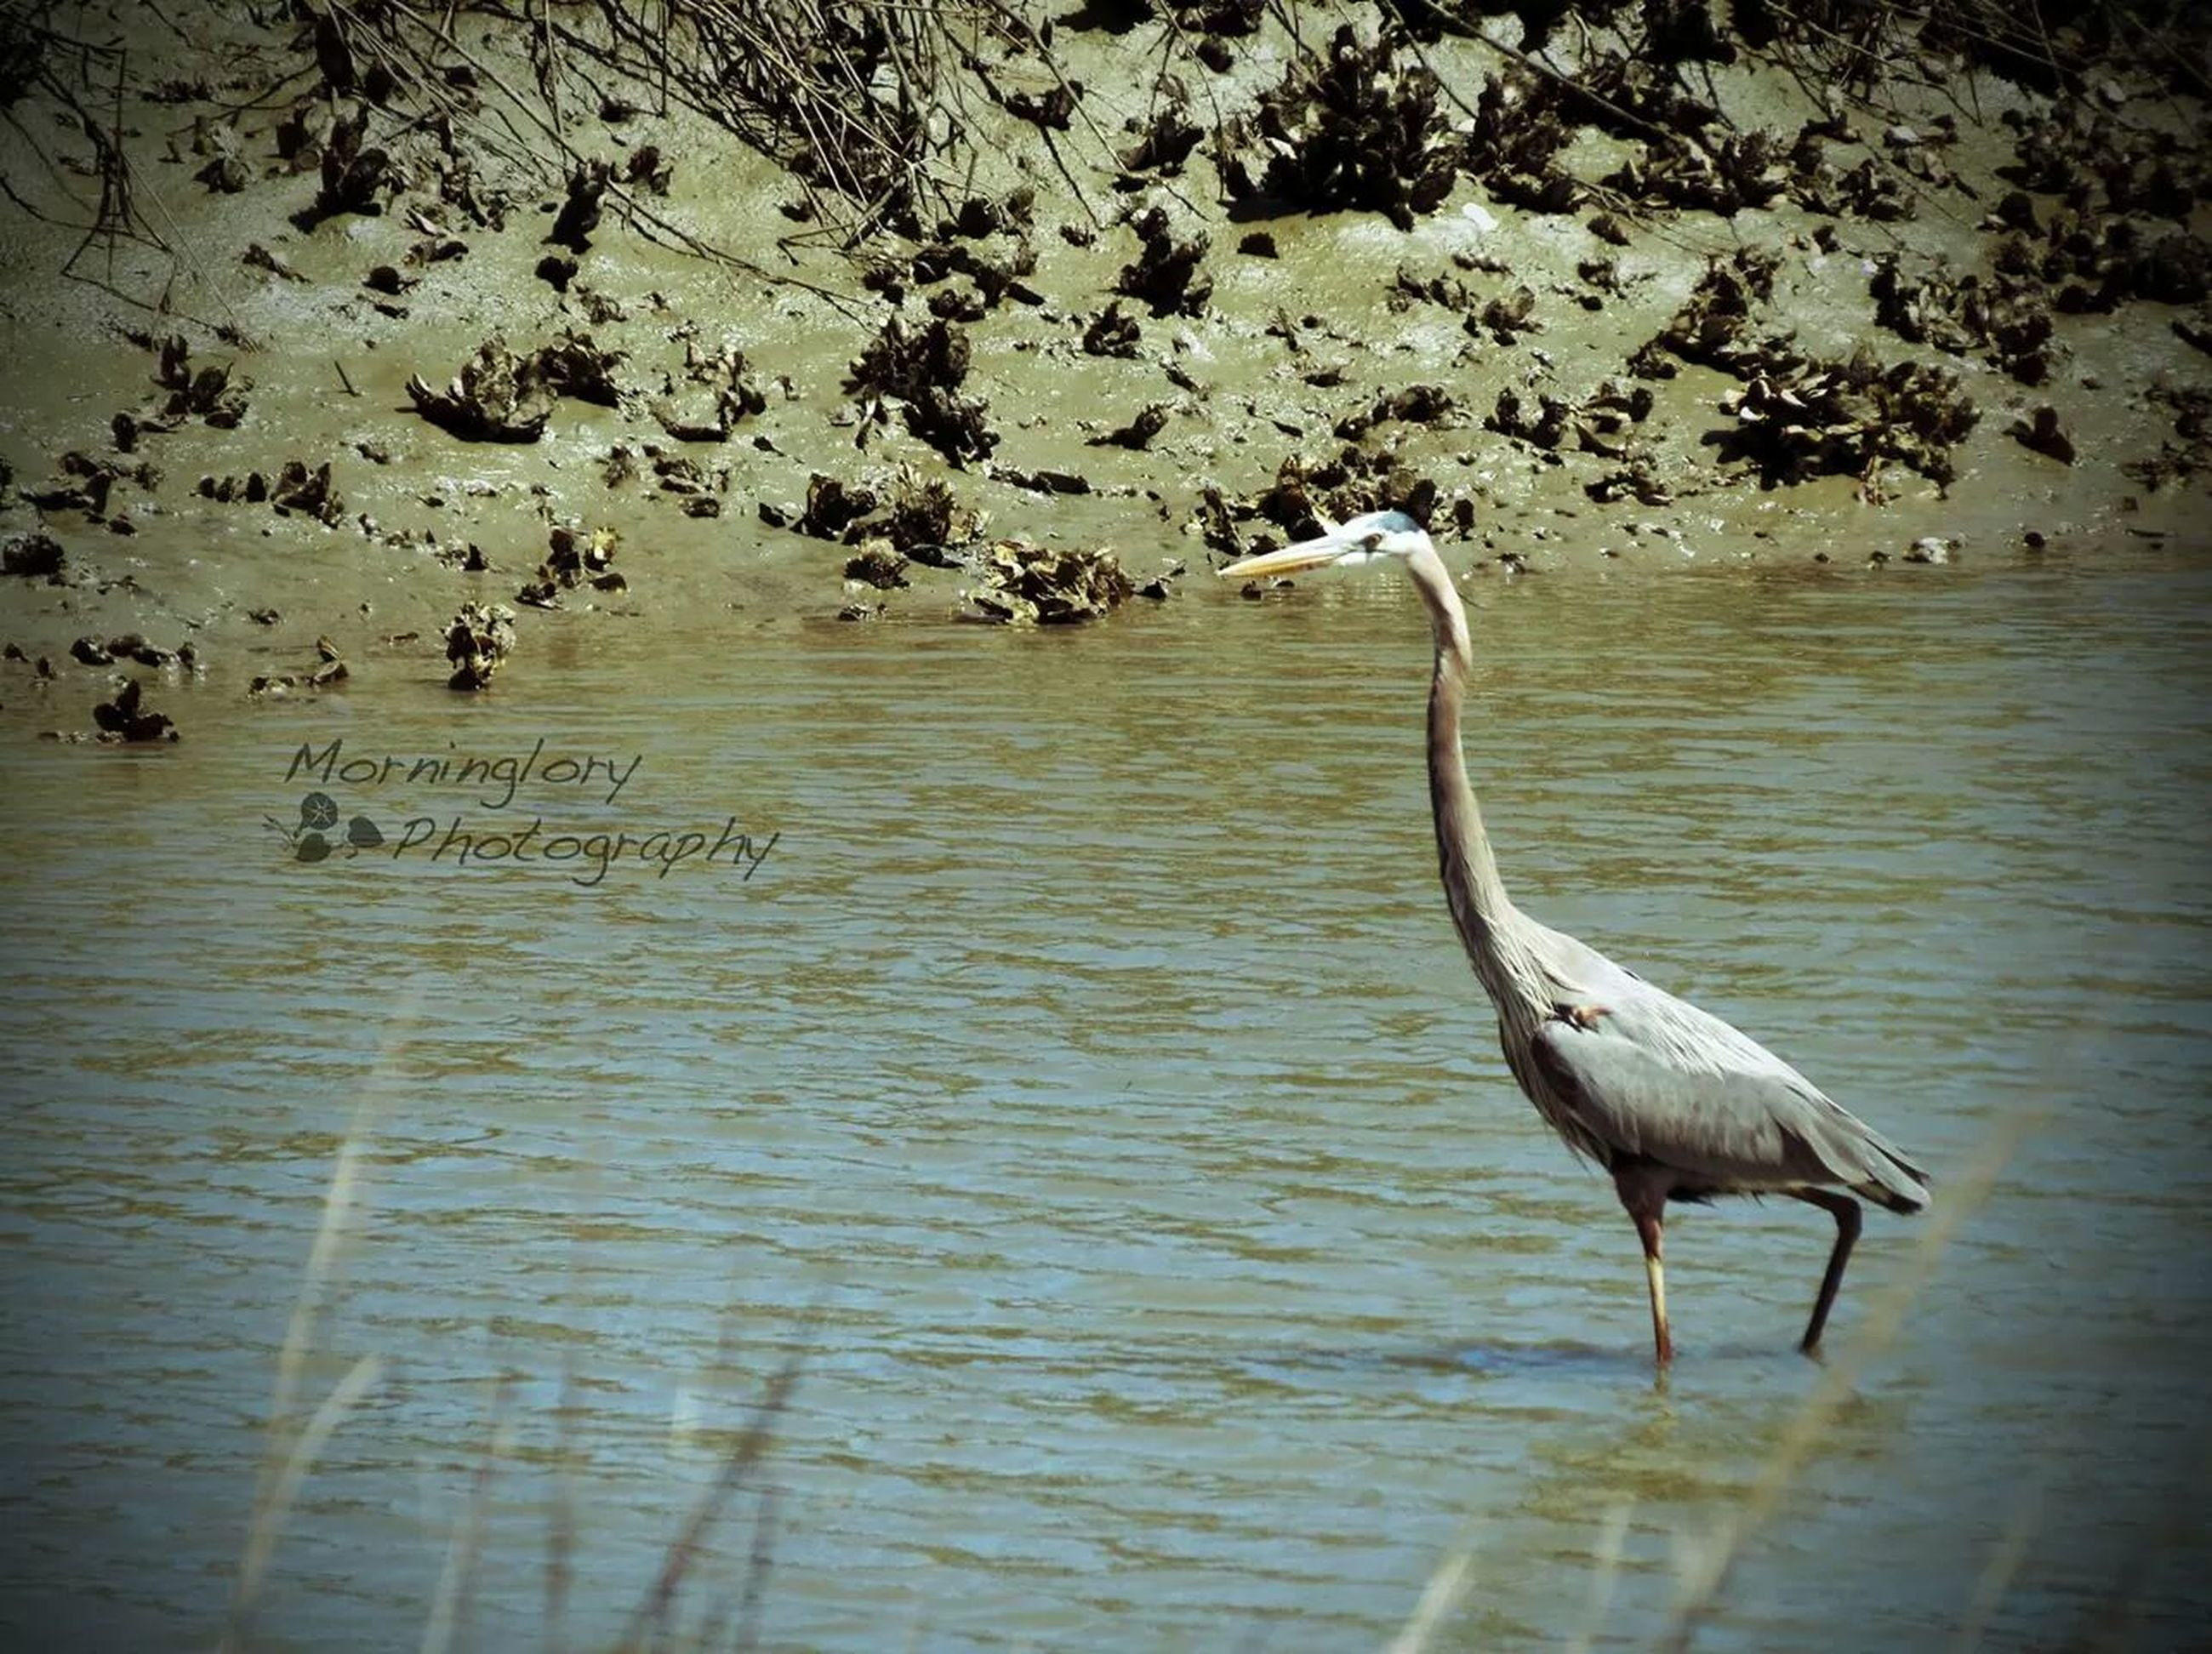 water, bird, animals in the wild, lake, wildlife, animal themes, nature, waterfront, reflection, rippled, tree, beauty in nature, tranquility, river, swan, tranquil scene, outdoors, day, swimming, no people